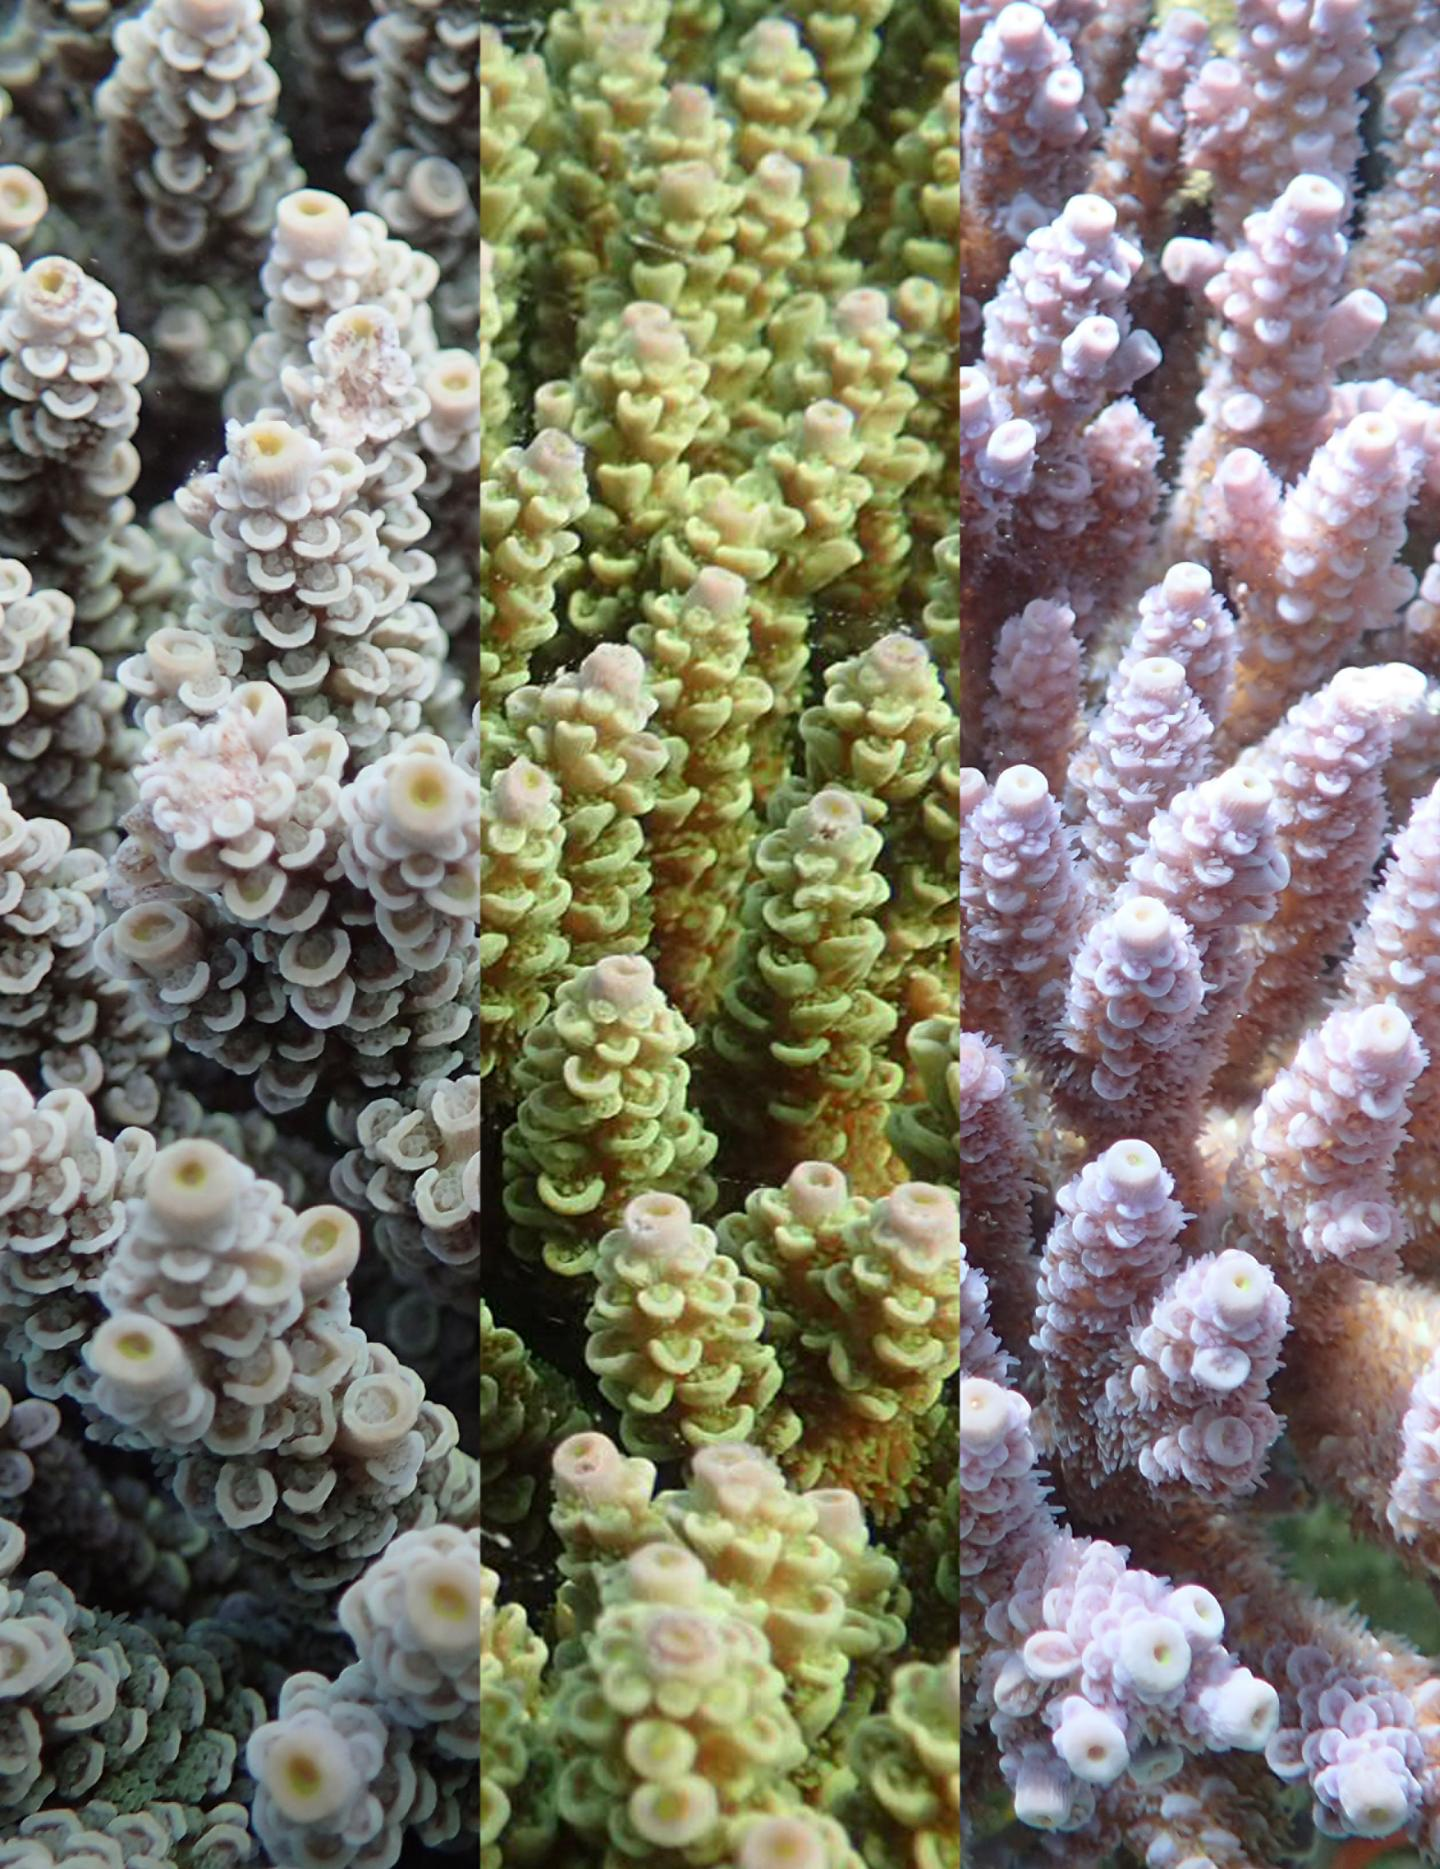 The three color morphs of Acropora Tenuis